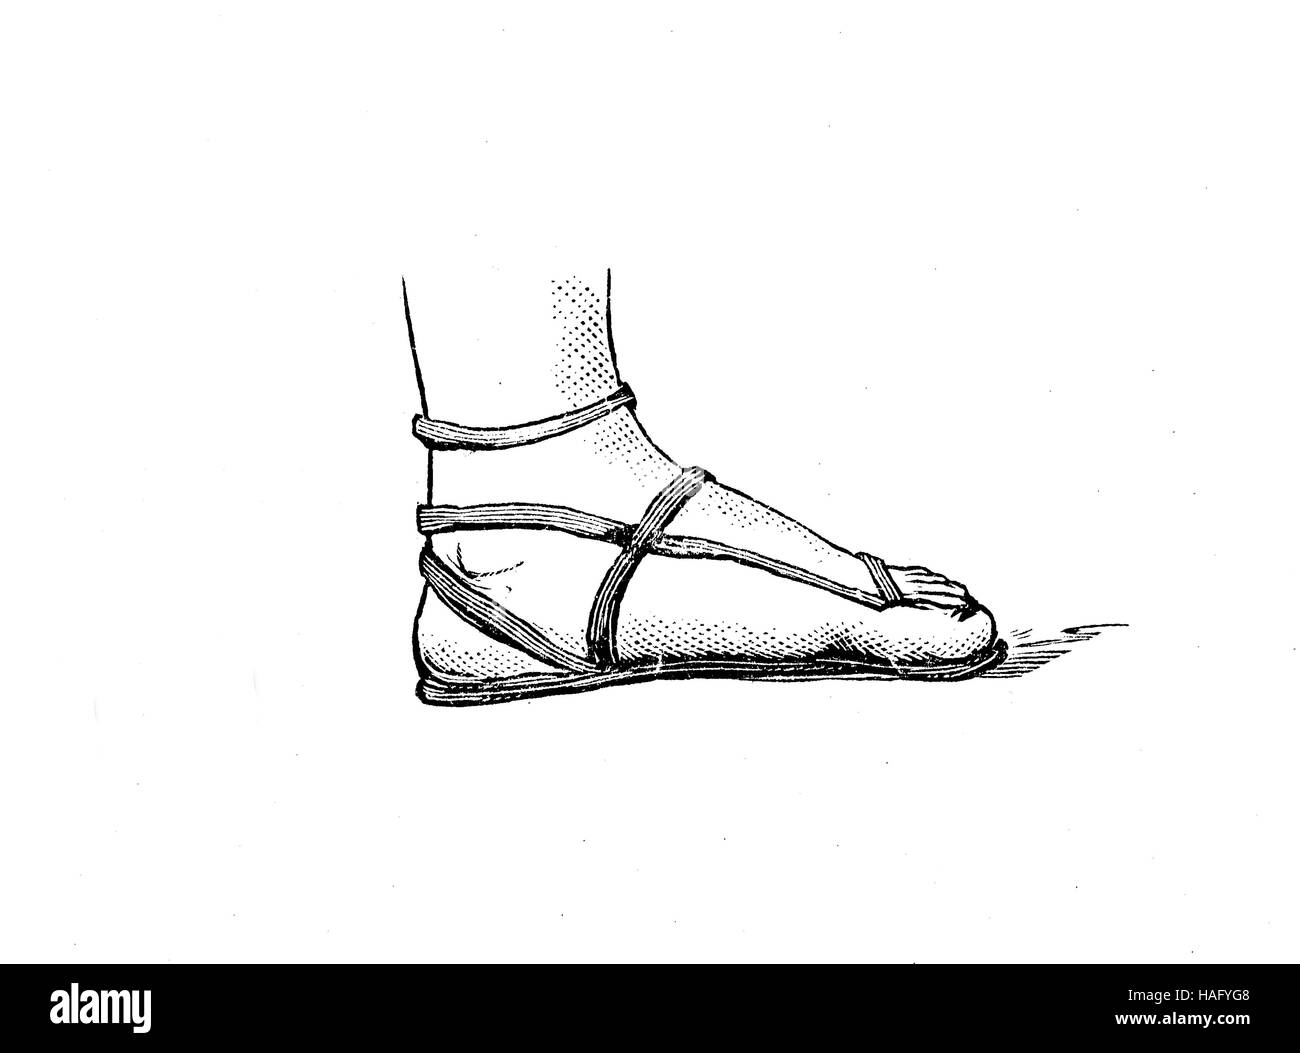 shoe fashion of the past, an ancient greek sandal, shoe, Greece, woodcut from the year 1880 - Stock Image